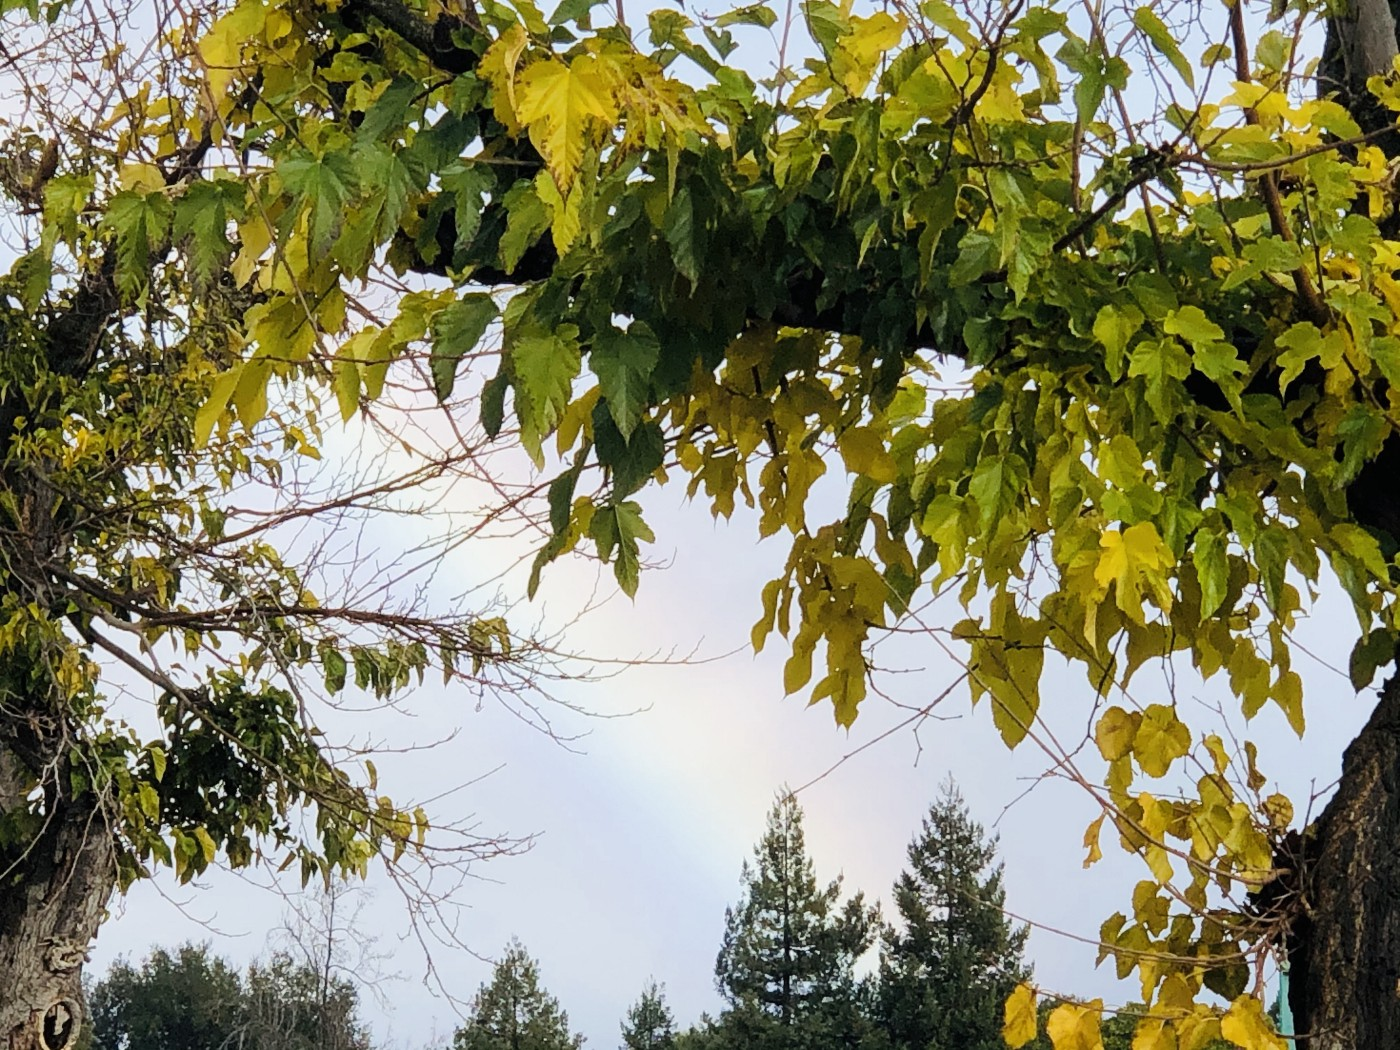 decorative: green leafy trees framing a blue sky with a rainbow